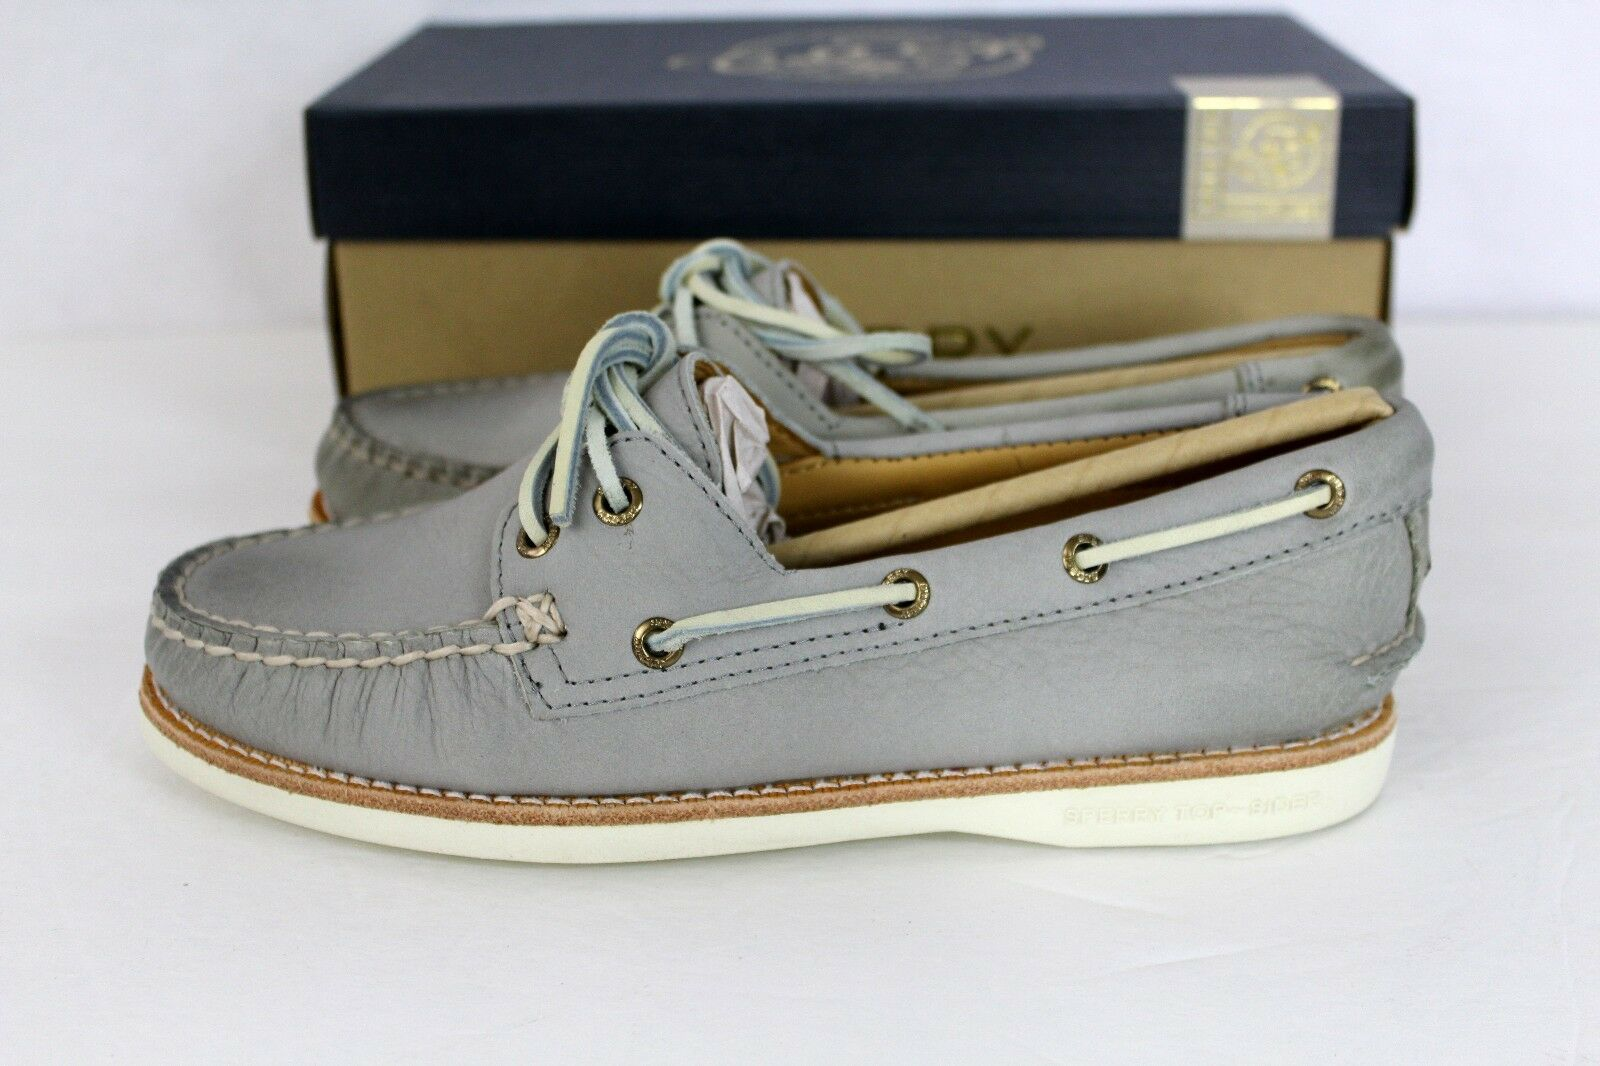 Sperry gold CUP A O Light Grey Leather Women's Boat shoes NEW NIB  5.5 Orig